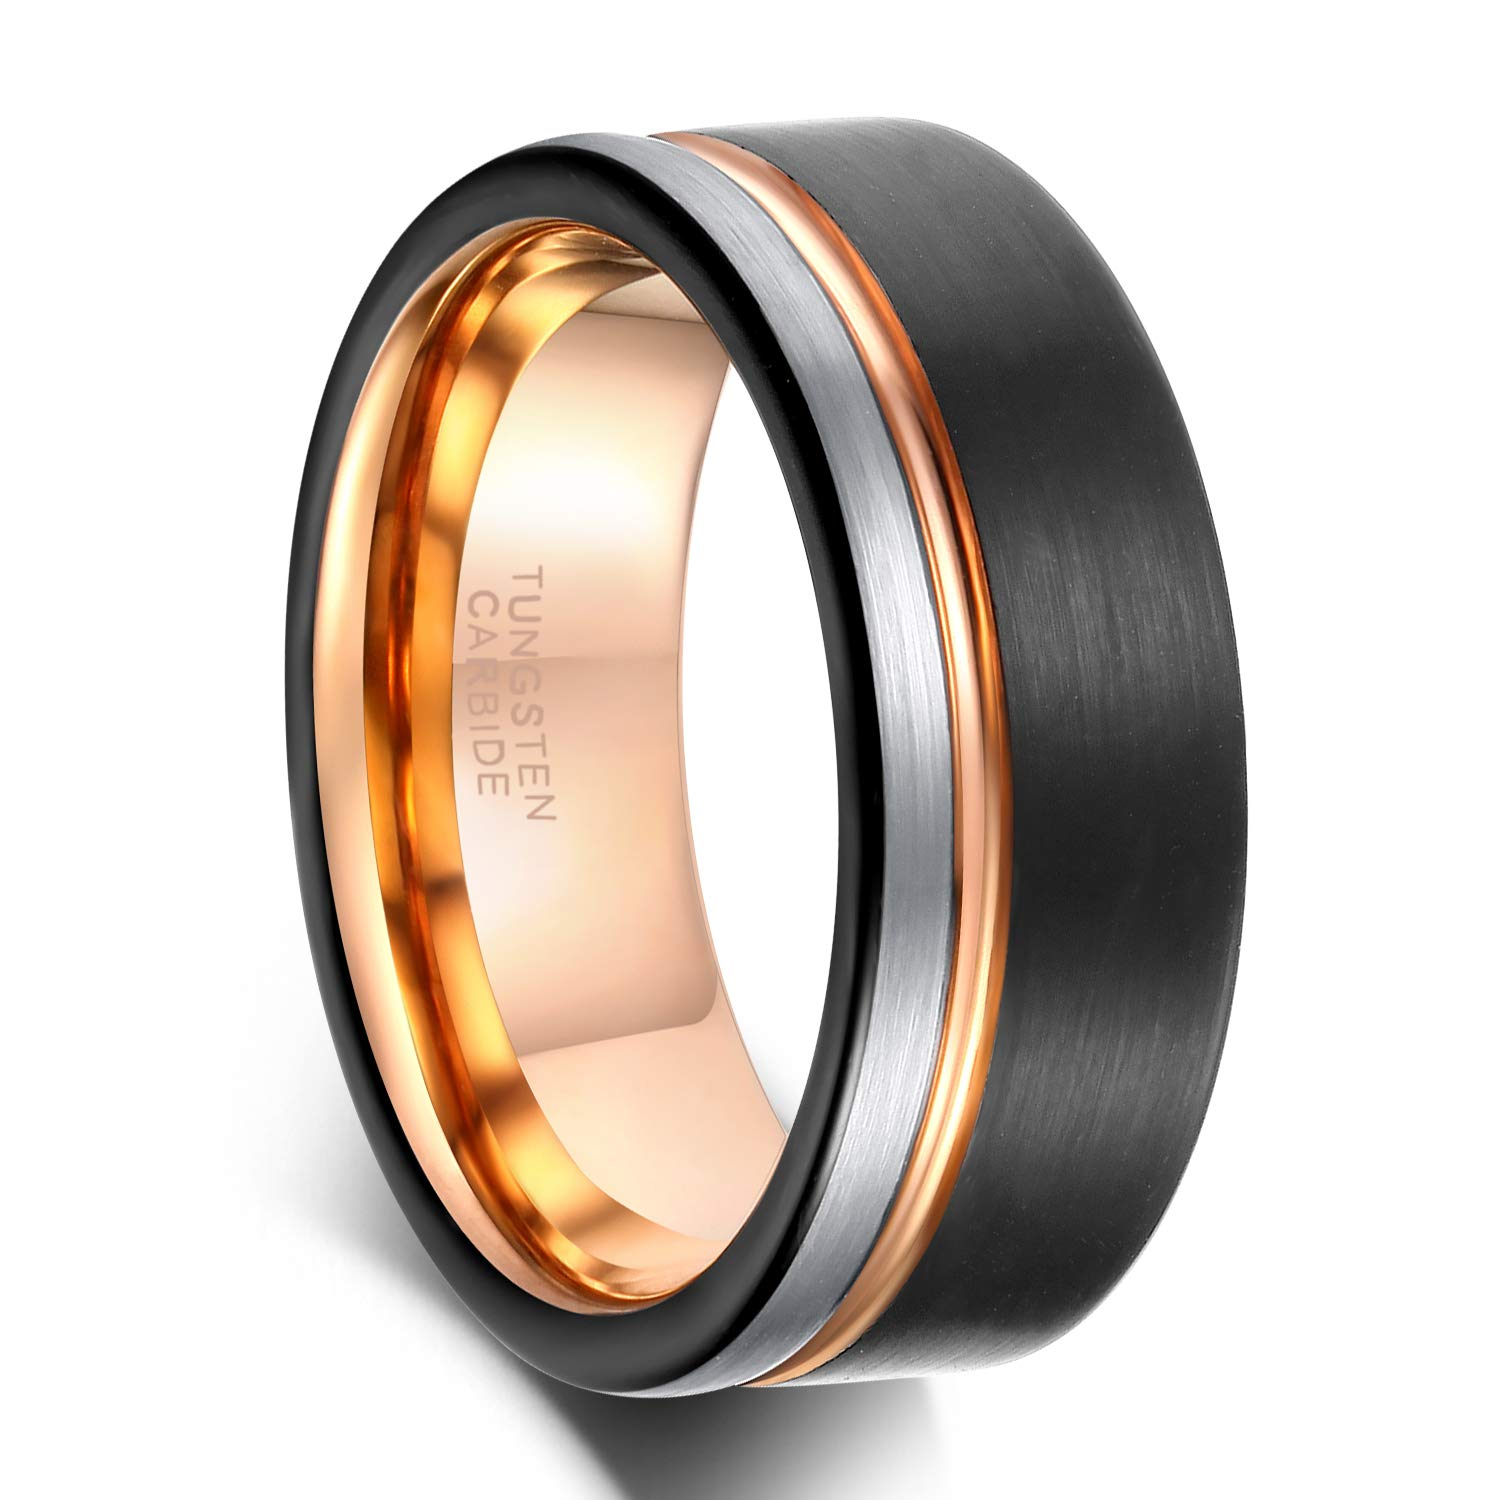 8mm Tungsten Carbide Wedding Ring Band for Men Women Blue Grooved Line Two Tone Brushed Comfort Fit Size 12